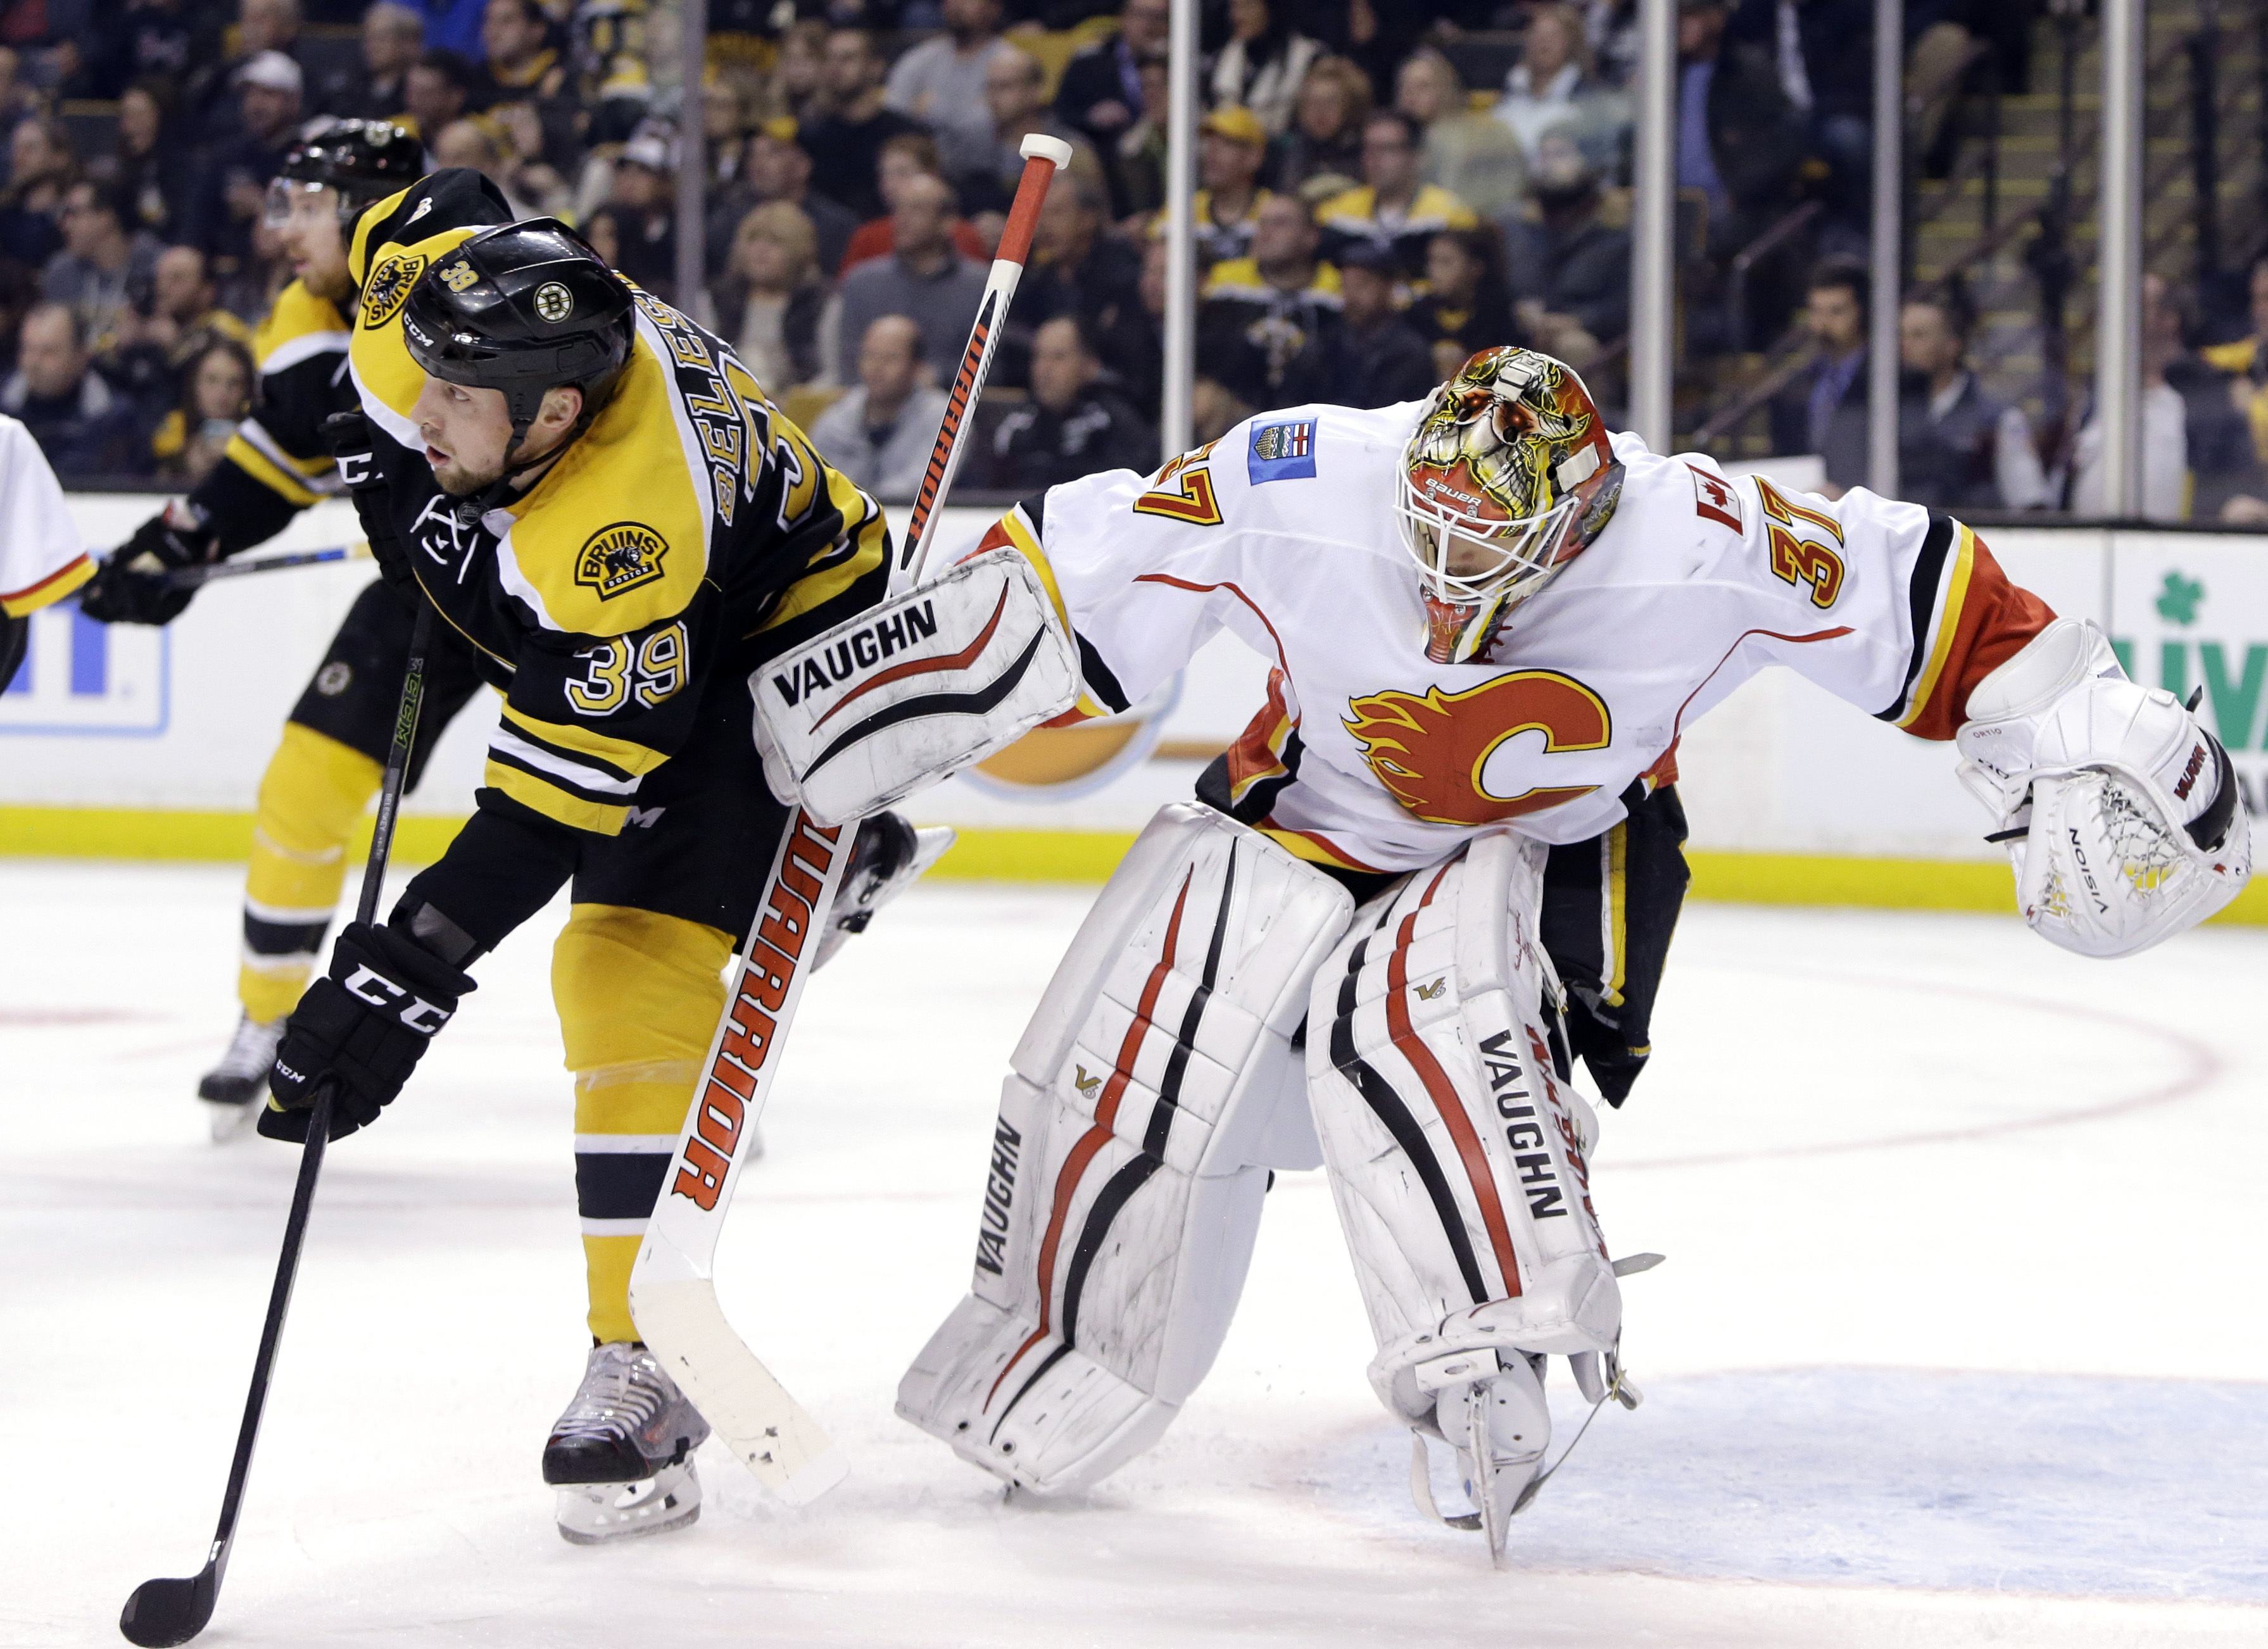 Boston Bruins left wing Matt Beleskey (39) makes contact with Calgary Flames goalie Joni Ortio (37) in the second period of an NHL hockey game, Tuesday, March 1, 2016, in Boston. Beleskey was called for goaltender interference. (AP Photo/Elise Amendola)